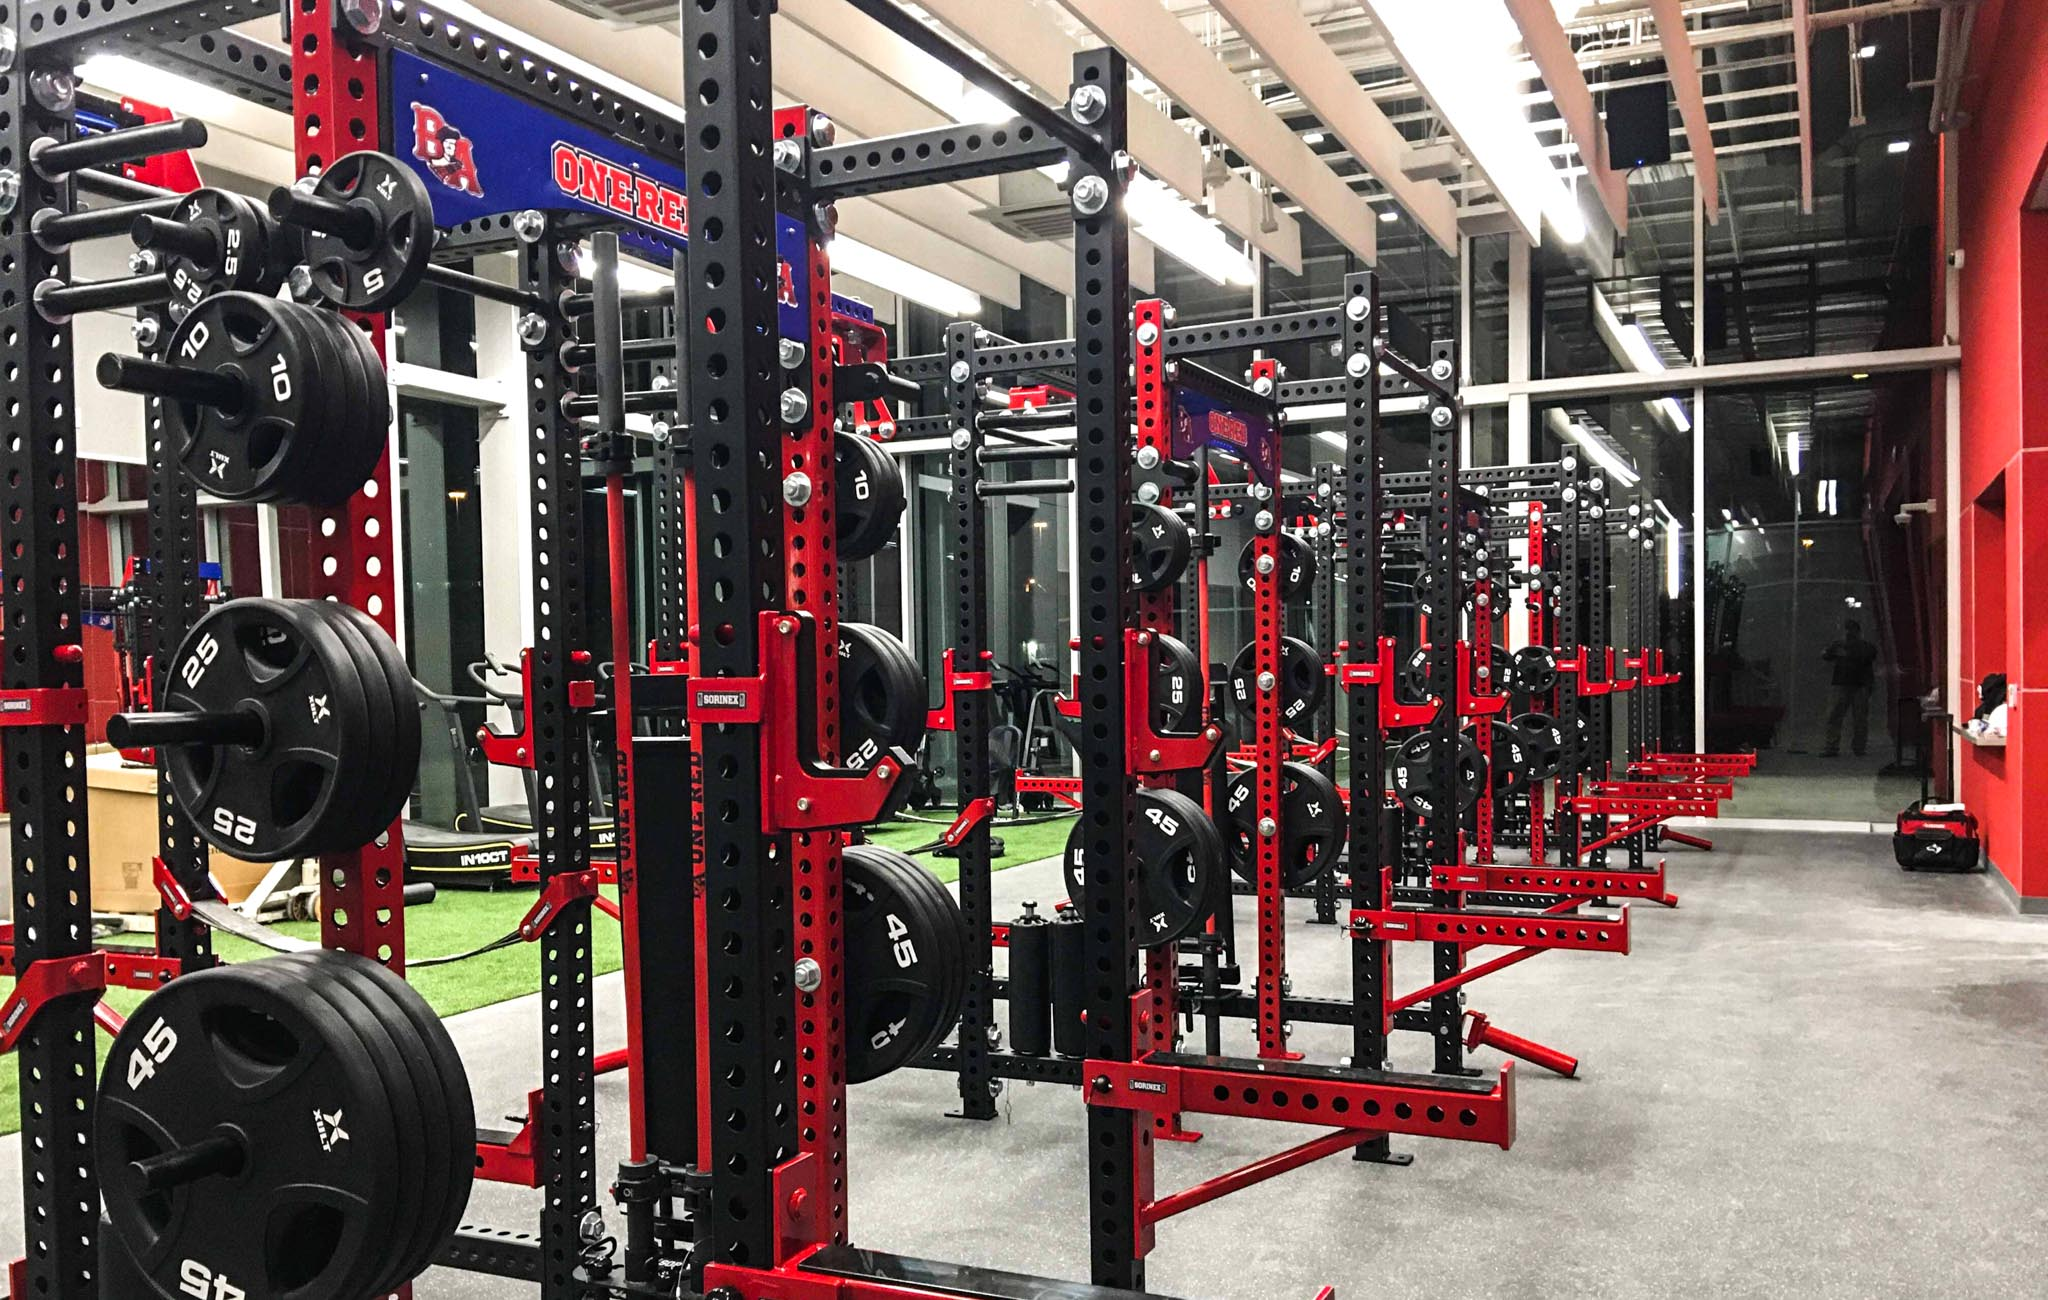 Bel Air High School training facility